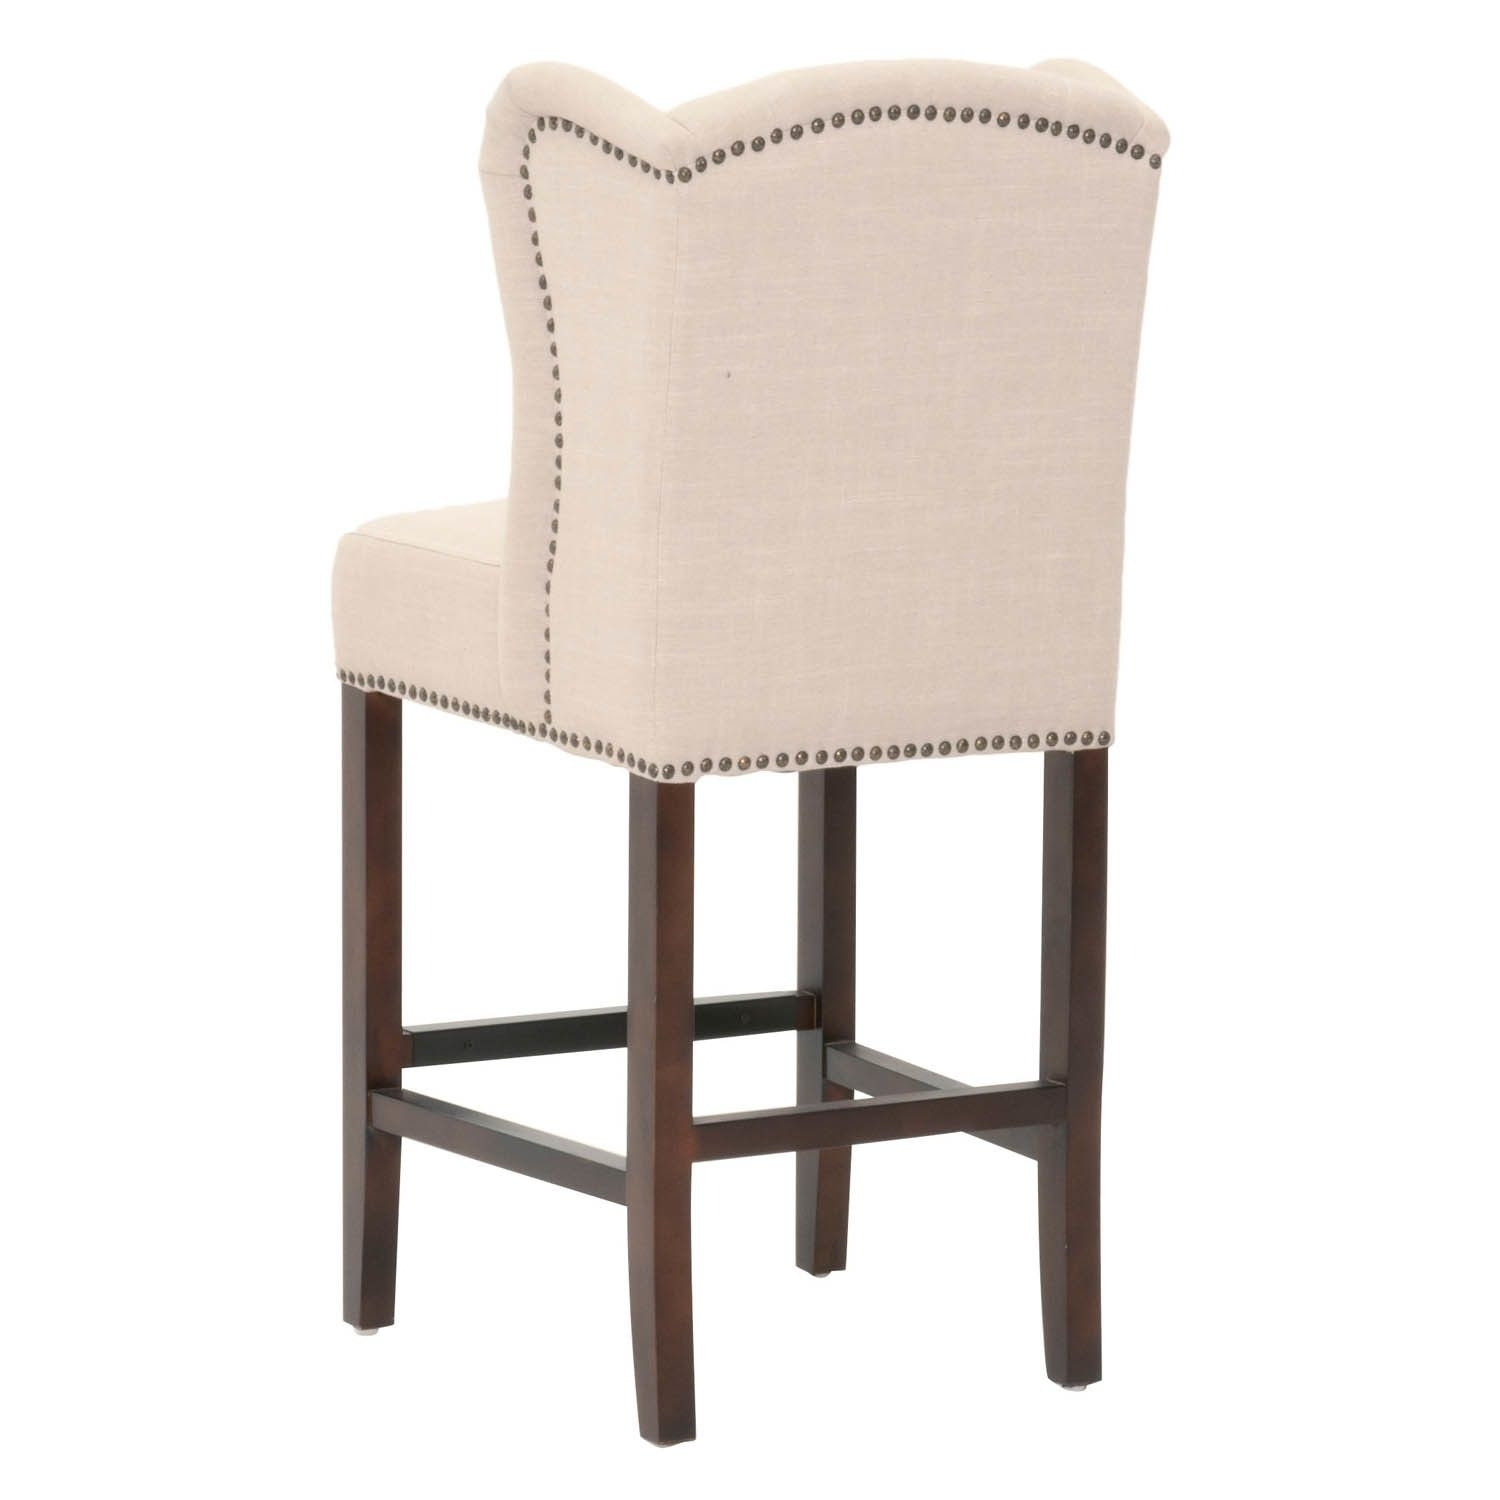 "Orient Express Furniture Brianna 26"" Bar Stool 